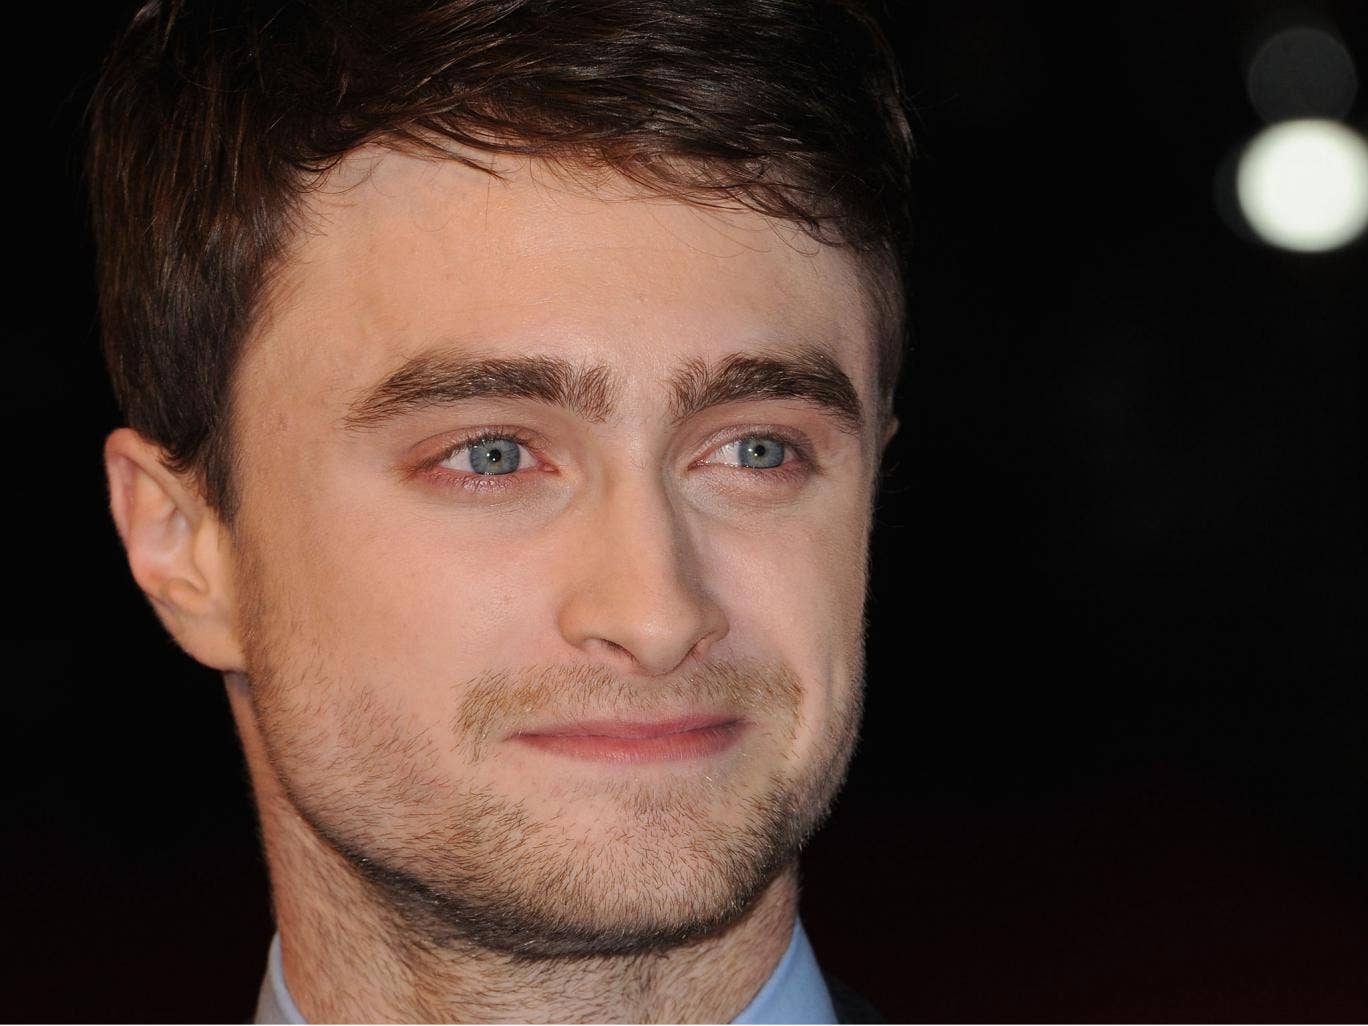 Daniel Radcliffe hopes to direct a movie at some point in the future